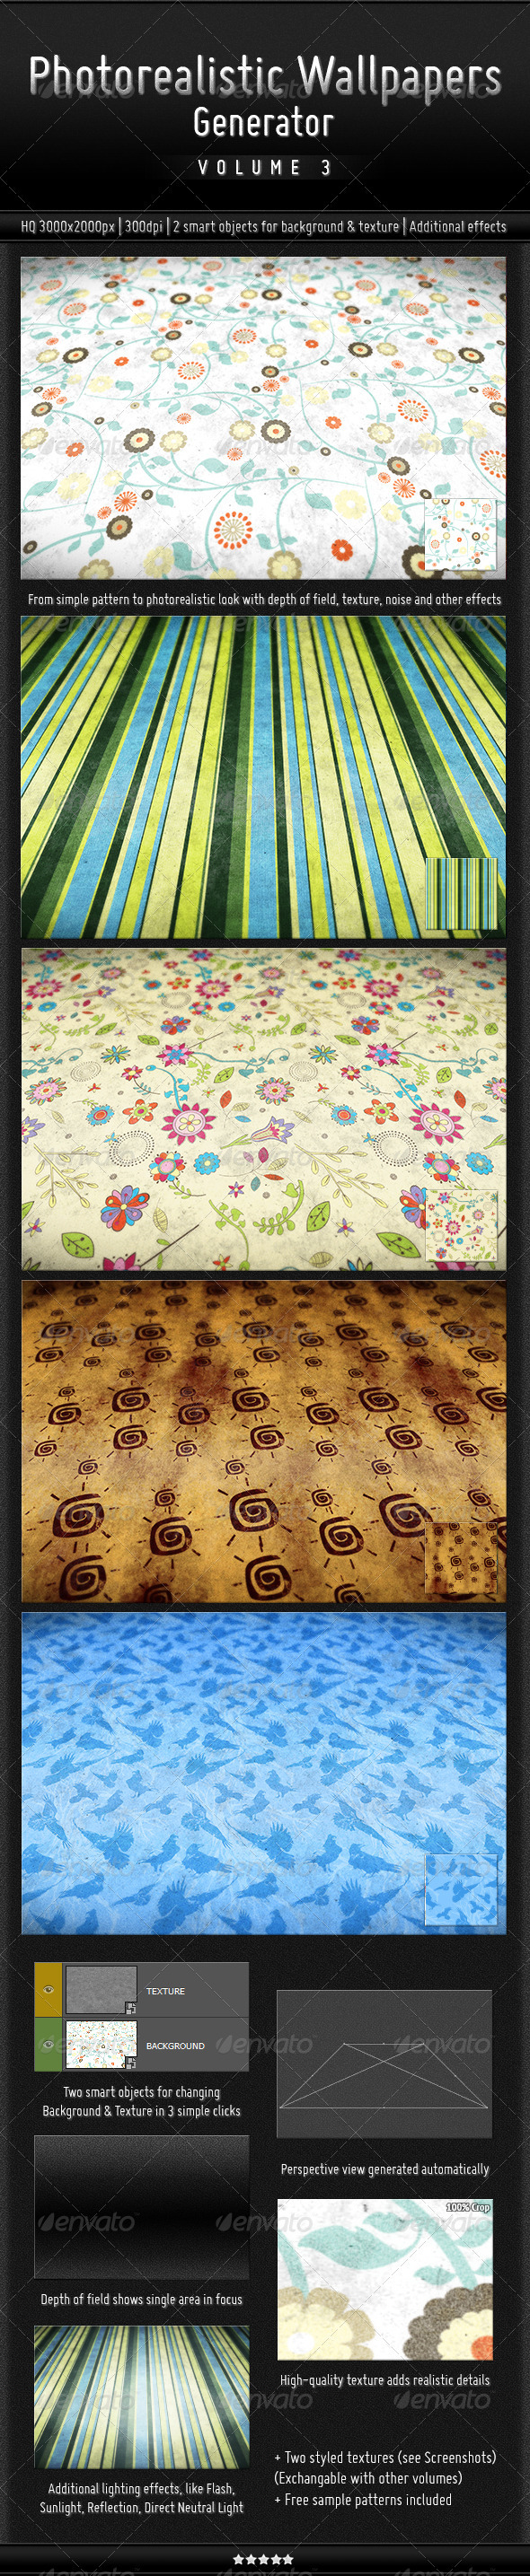 Photorealistic Wallpapers Generator, Vol. 3 - Patterns Backgrounds